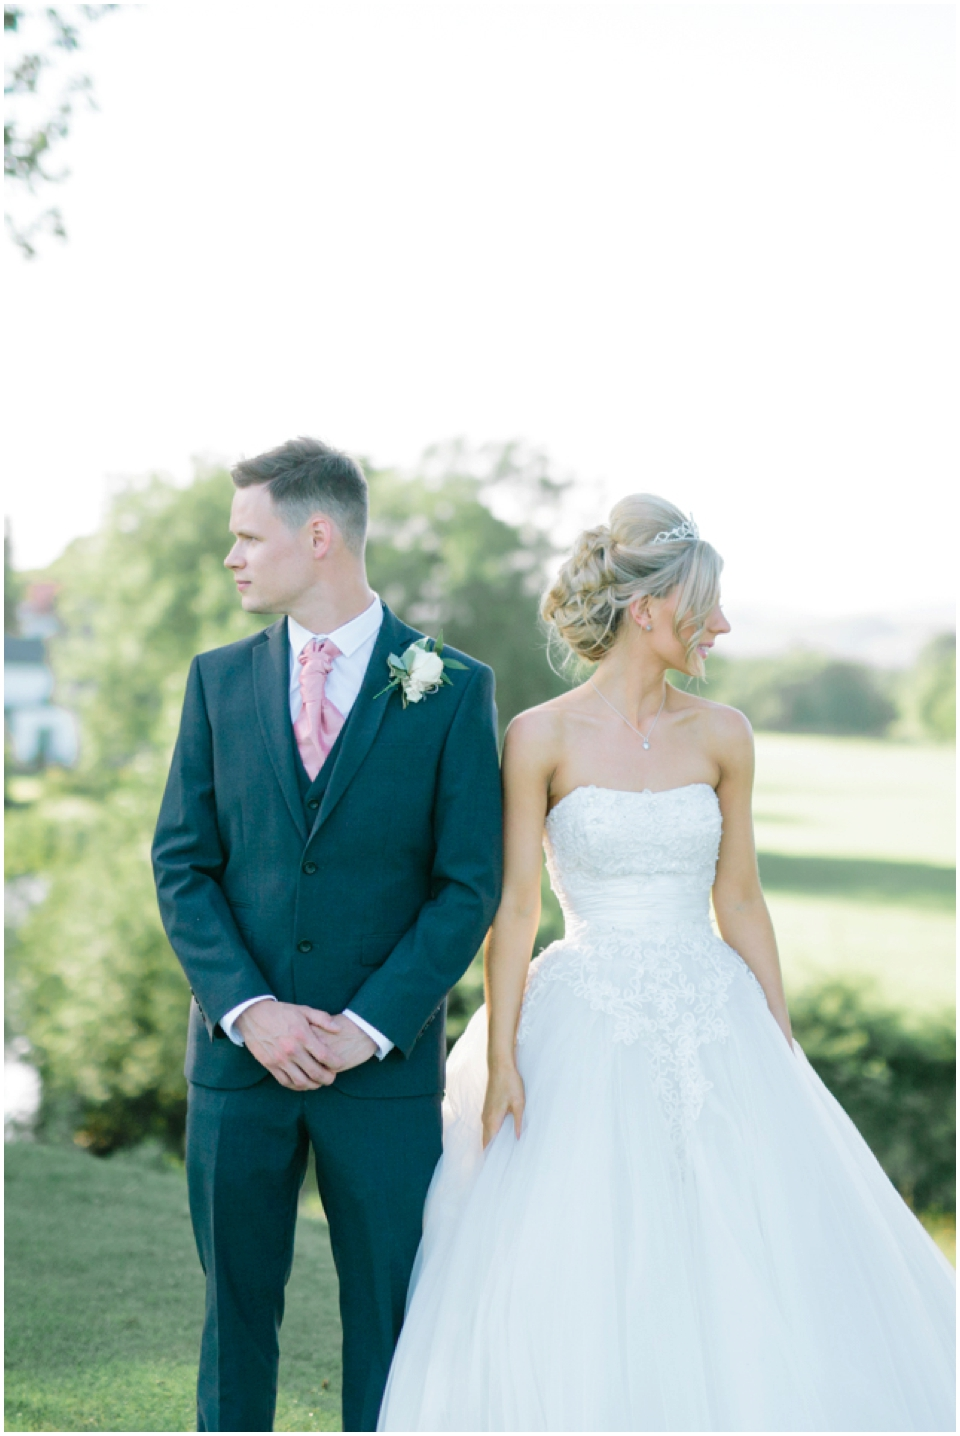 suzanne_li_photography_cumbria-wedding_0117.jpg